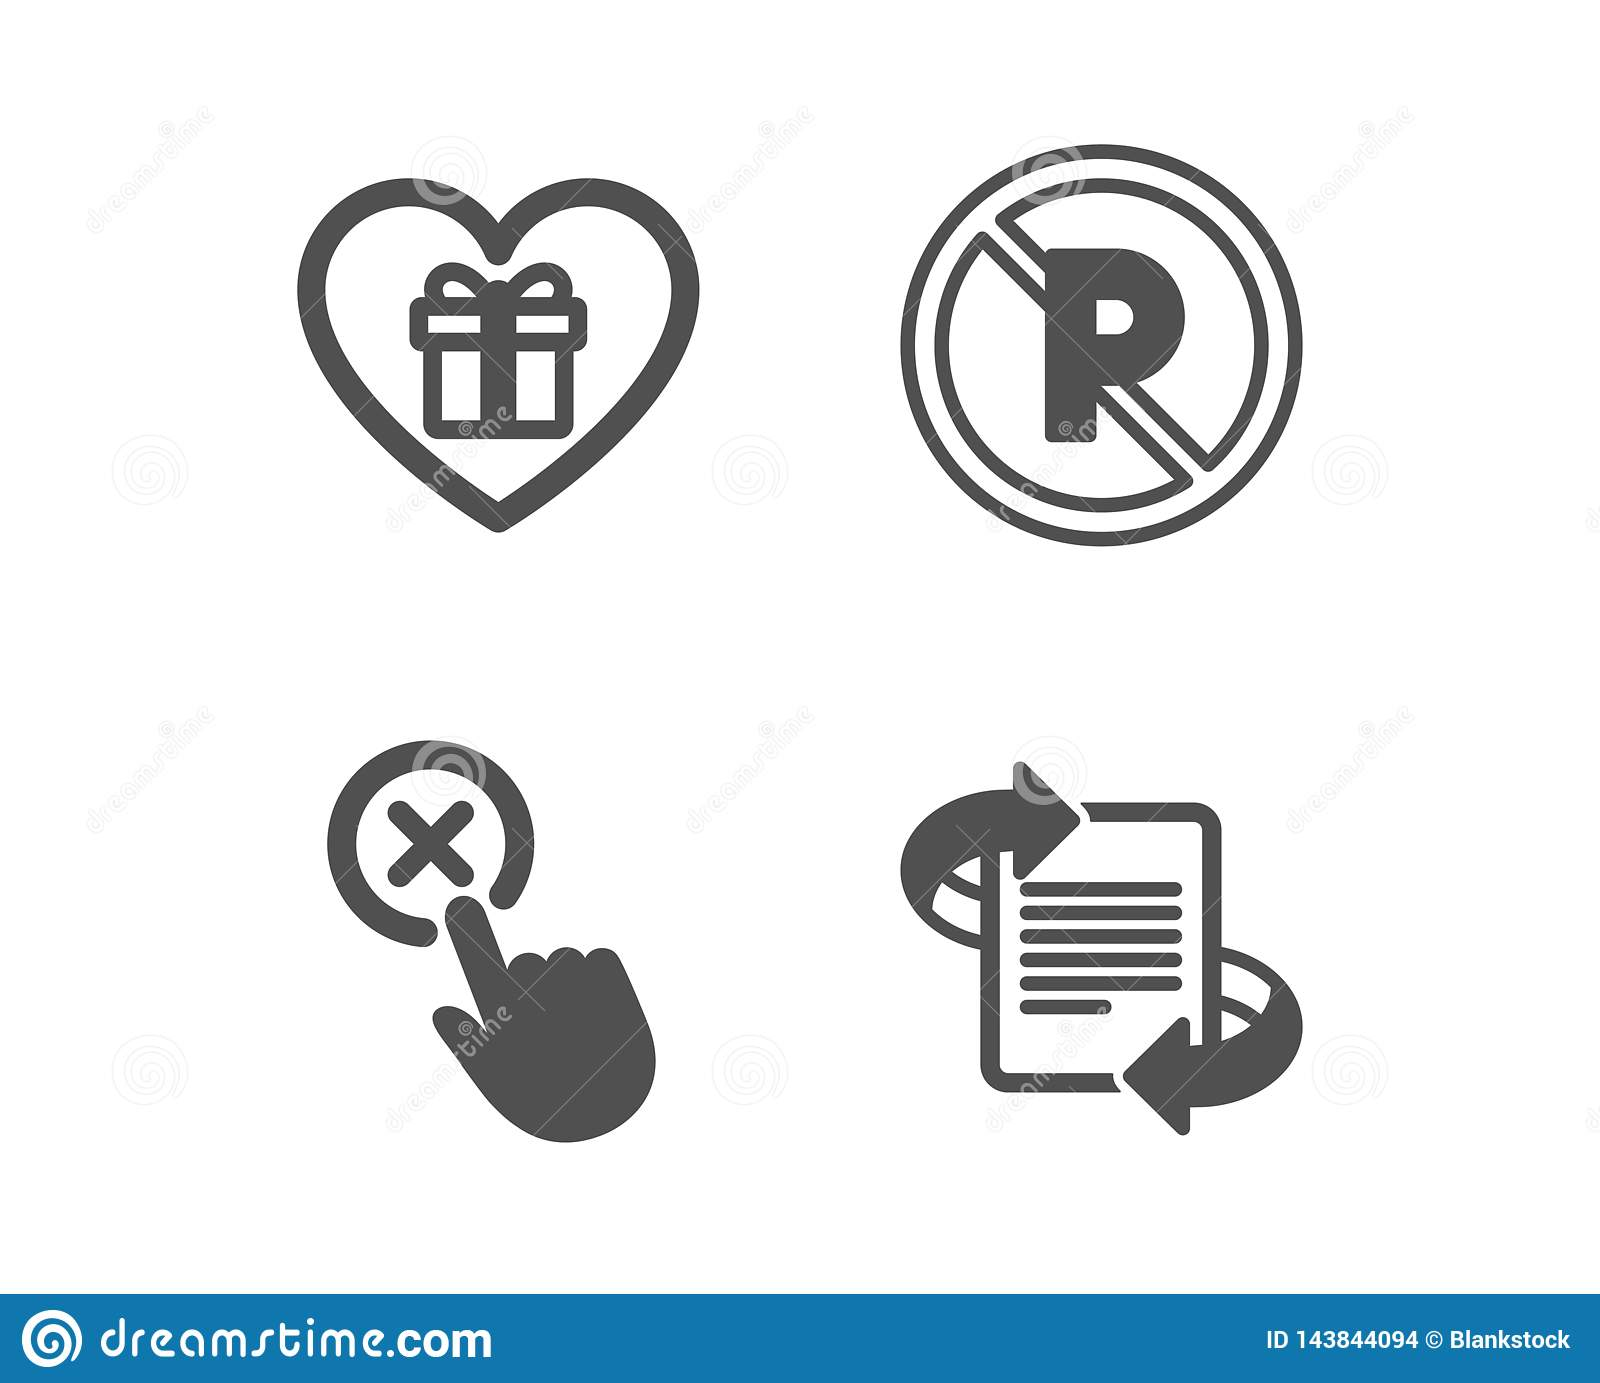 Reject Click, No Parking And Romantic Gift Icons  Marketing